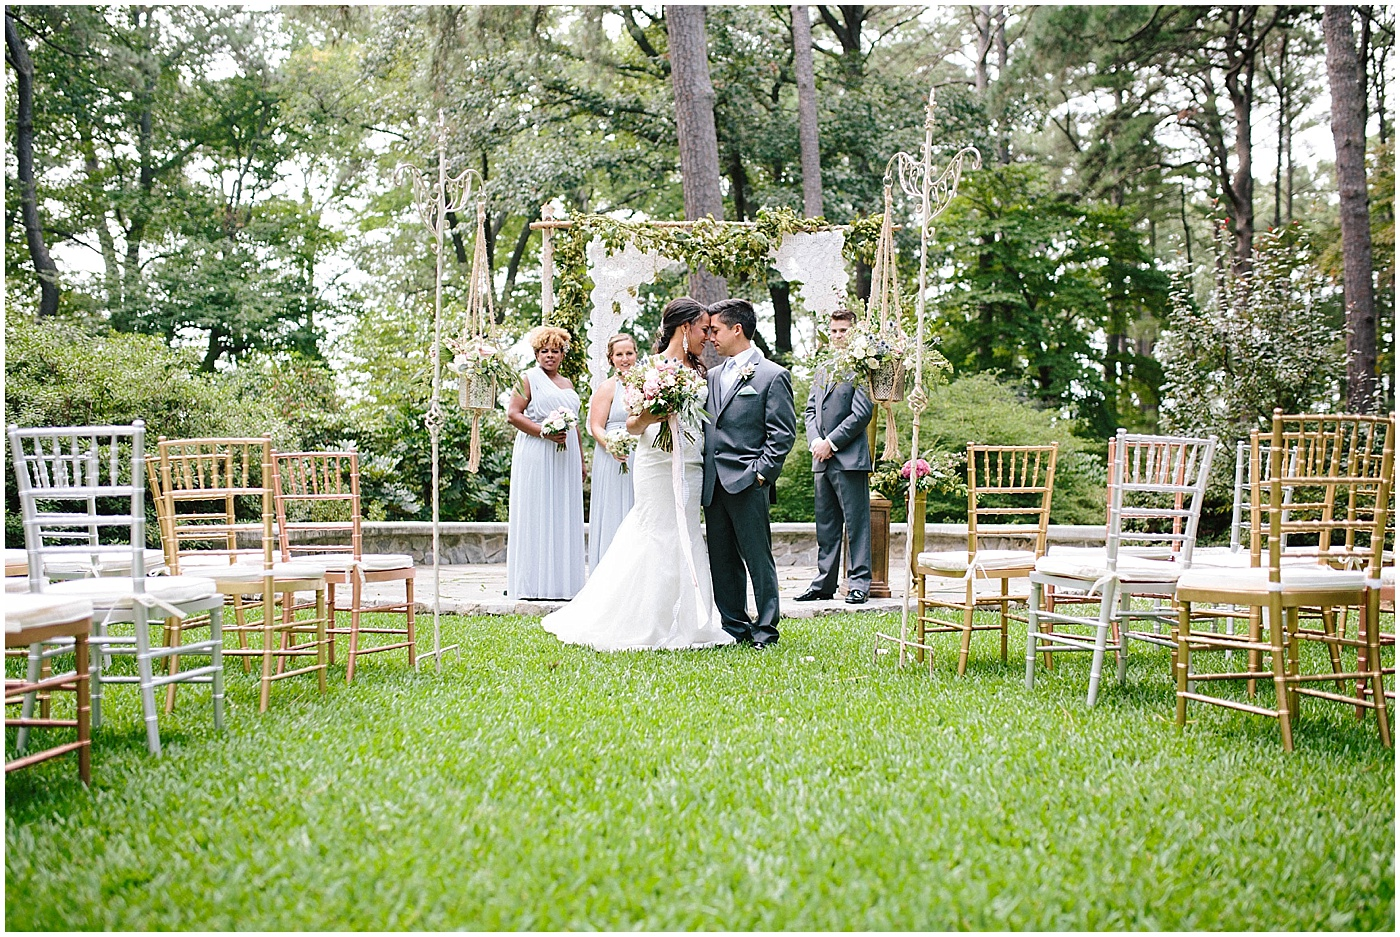 ... Norfolk_botanical_gardens_bohemian_wedding_0022  Norfolk_botanical_gardens_bohemian_wedding_0023  Norfolk_botanical_gardens_bohemian_wedding_0024 ...